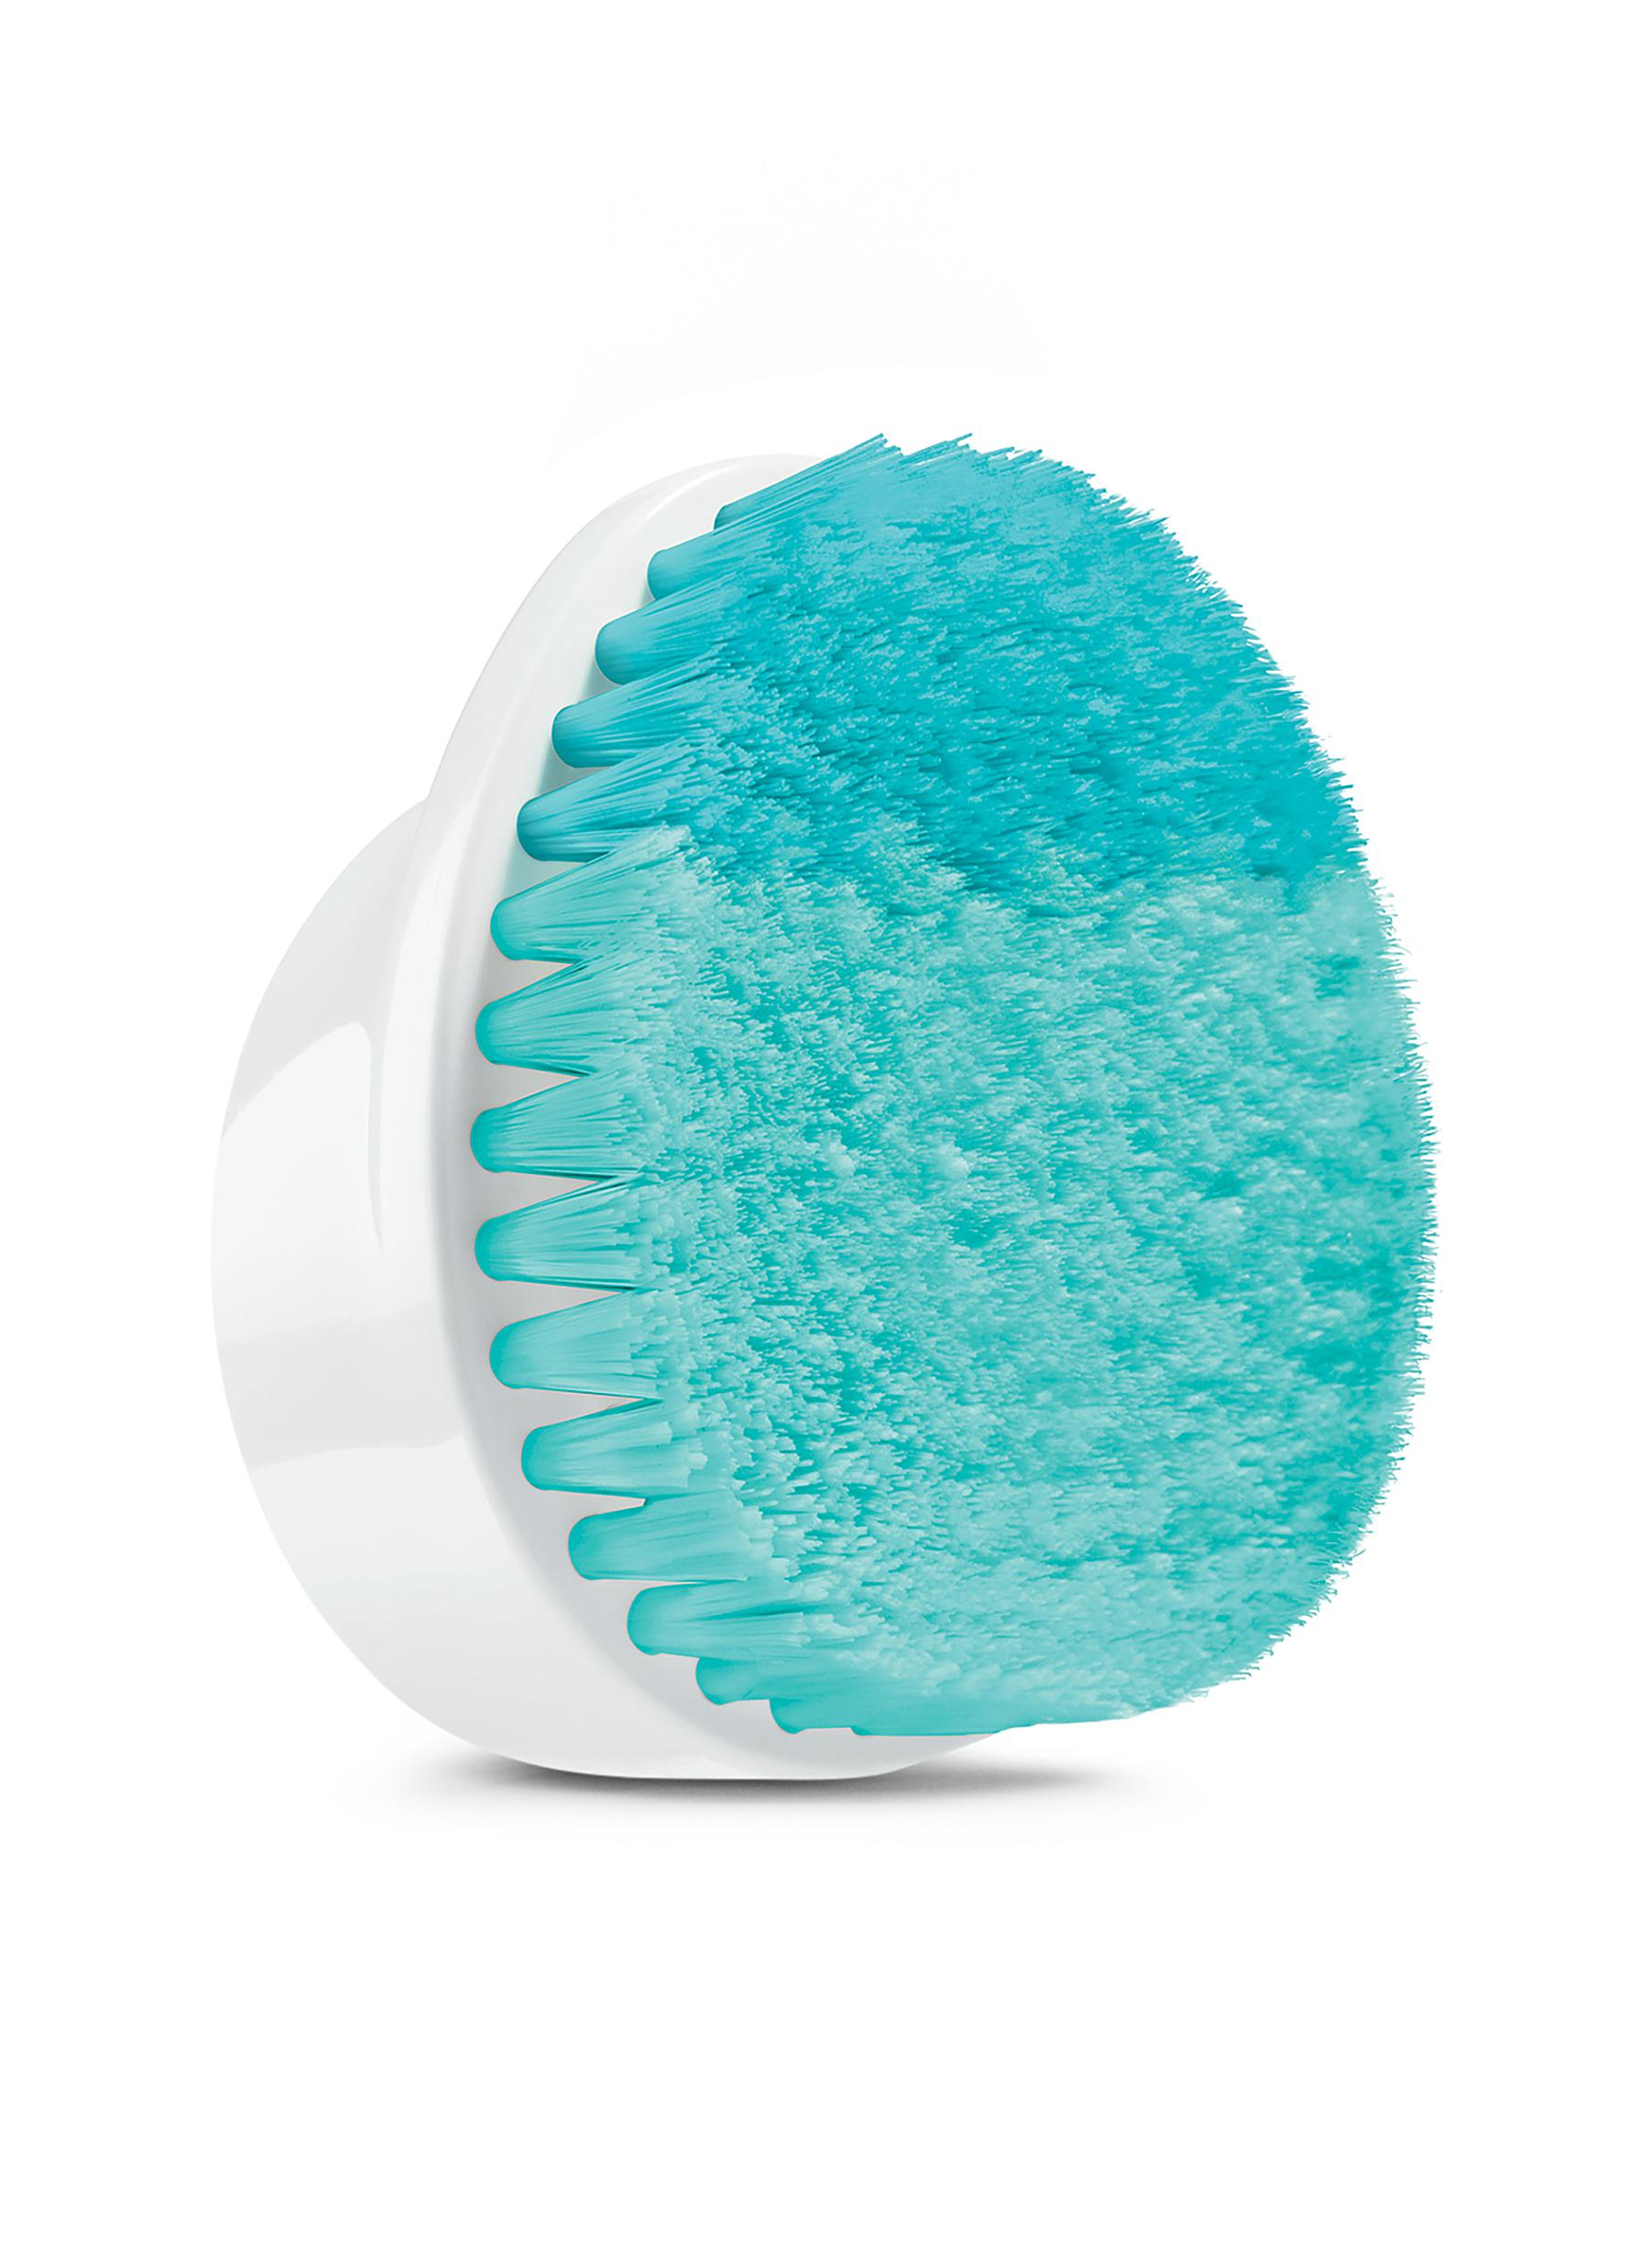 Sonic System Acne Solutions™ Deep Cleansing Brush Head by Clinique